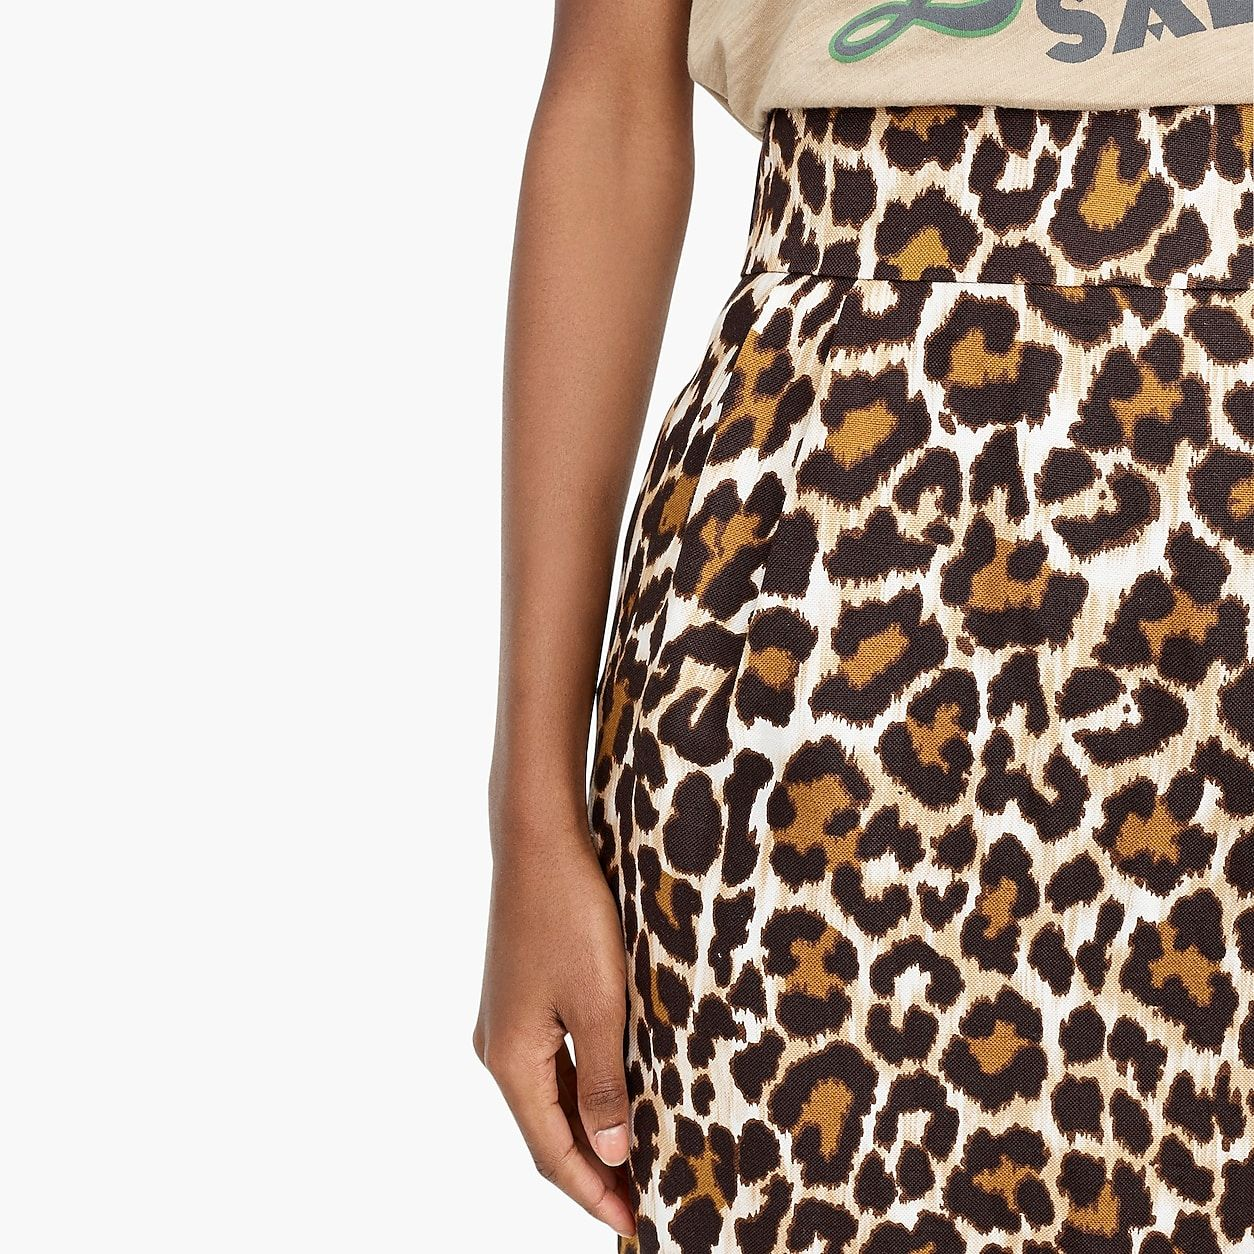 68f7788d96 Linen Pencil Skirt In Leopard Print | Products in 2019 | Skirts ...